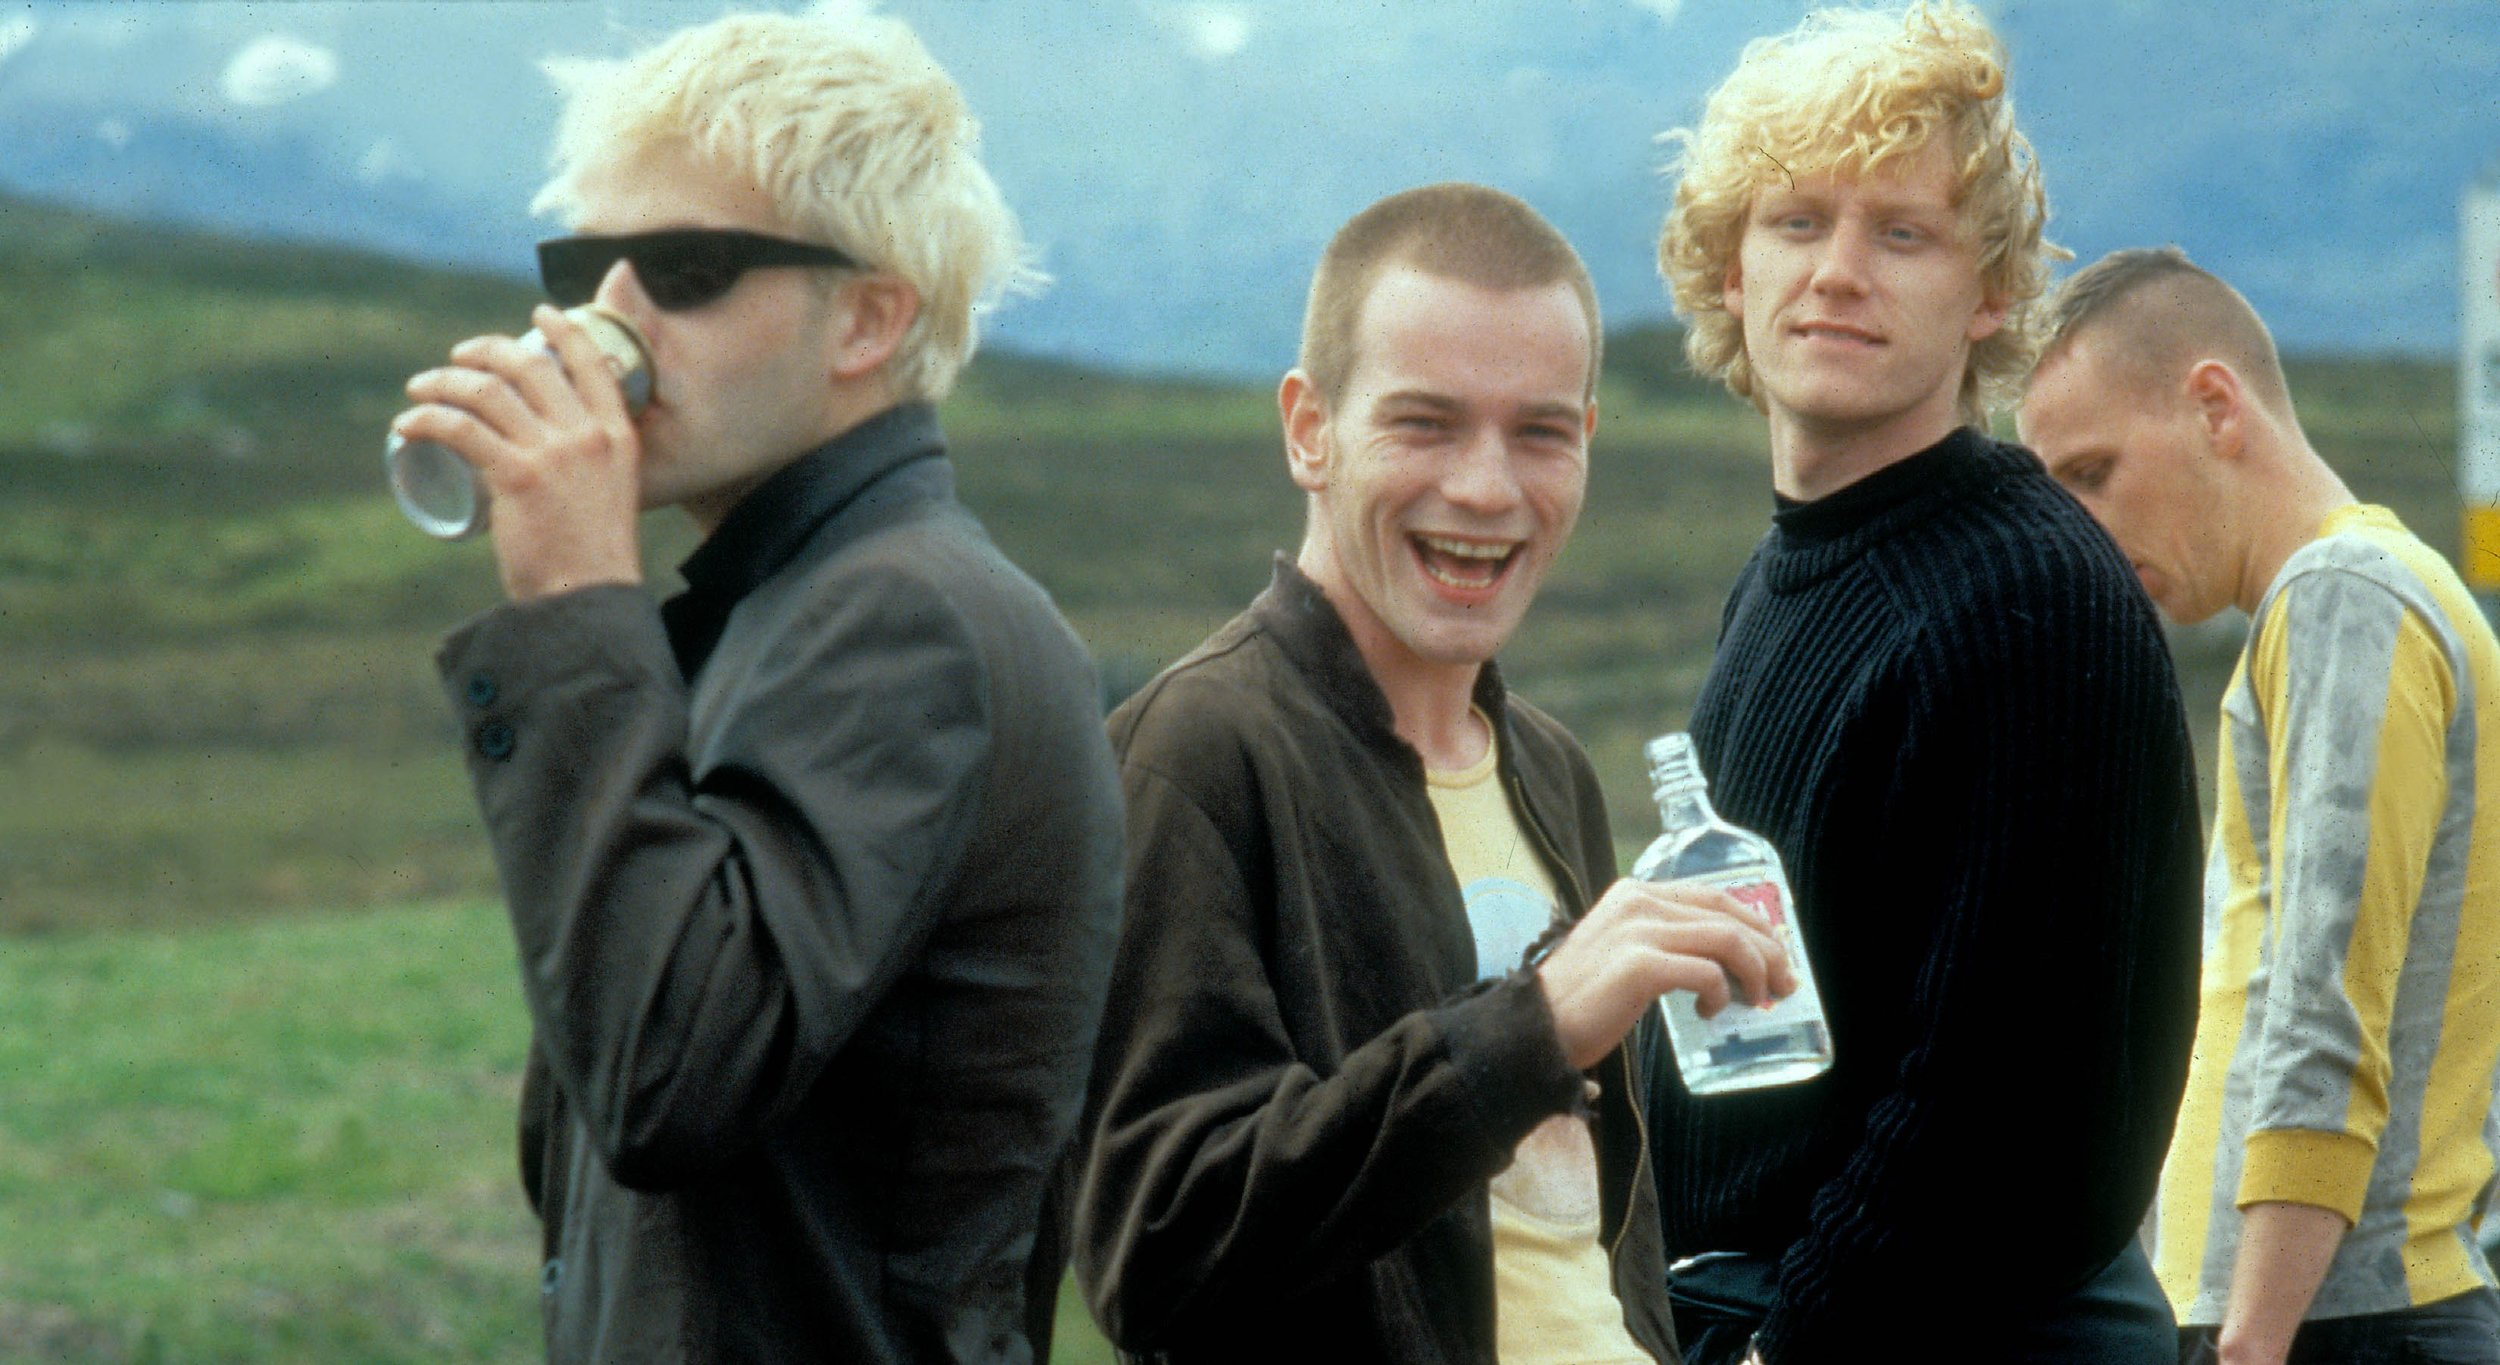 TRAINSPOTTING: FILMMAKING AND APPROPRIATION OF SUBCULTURE